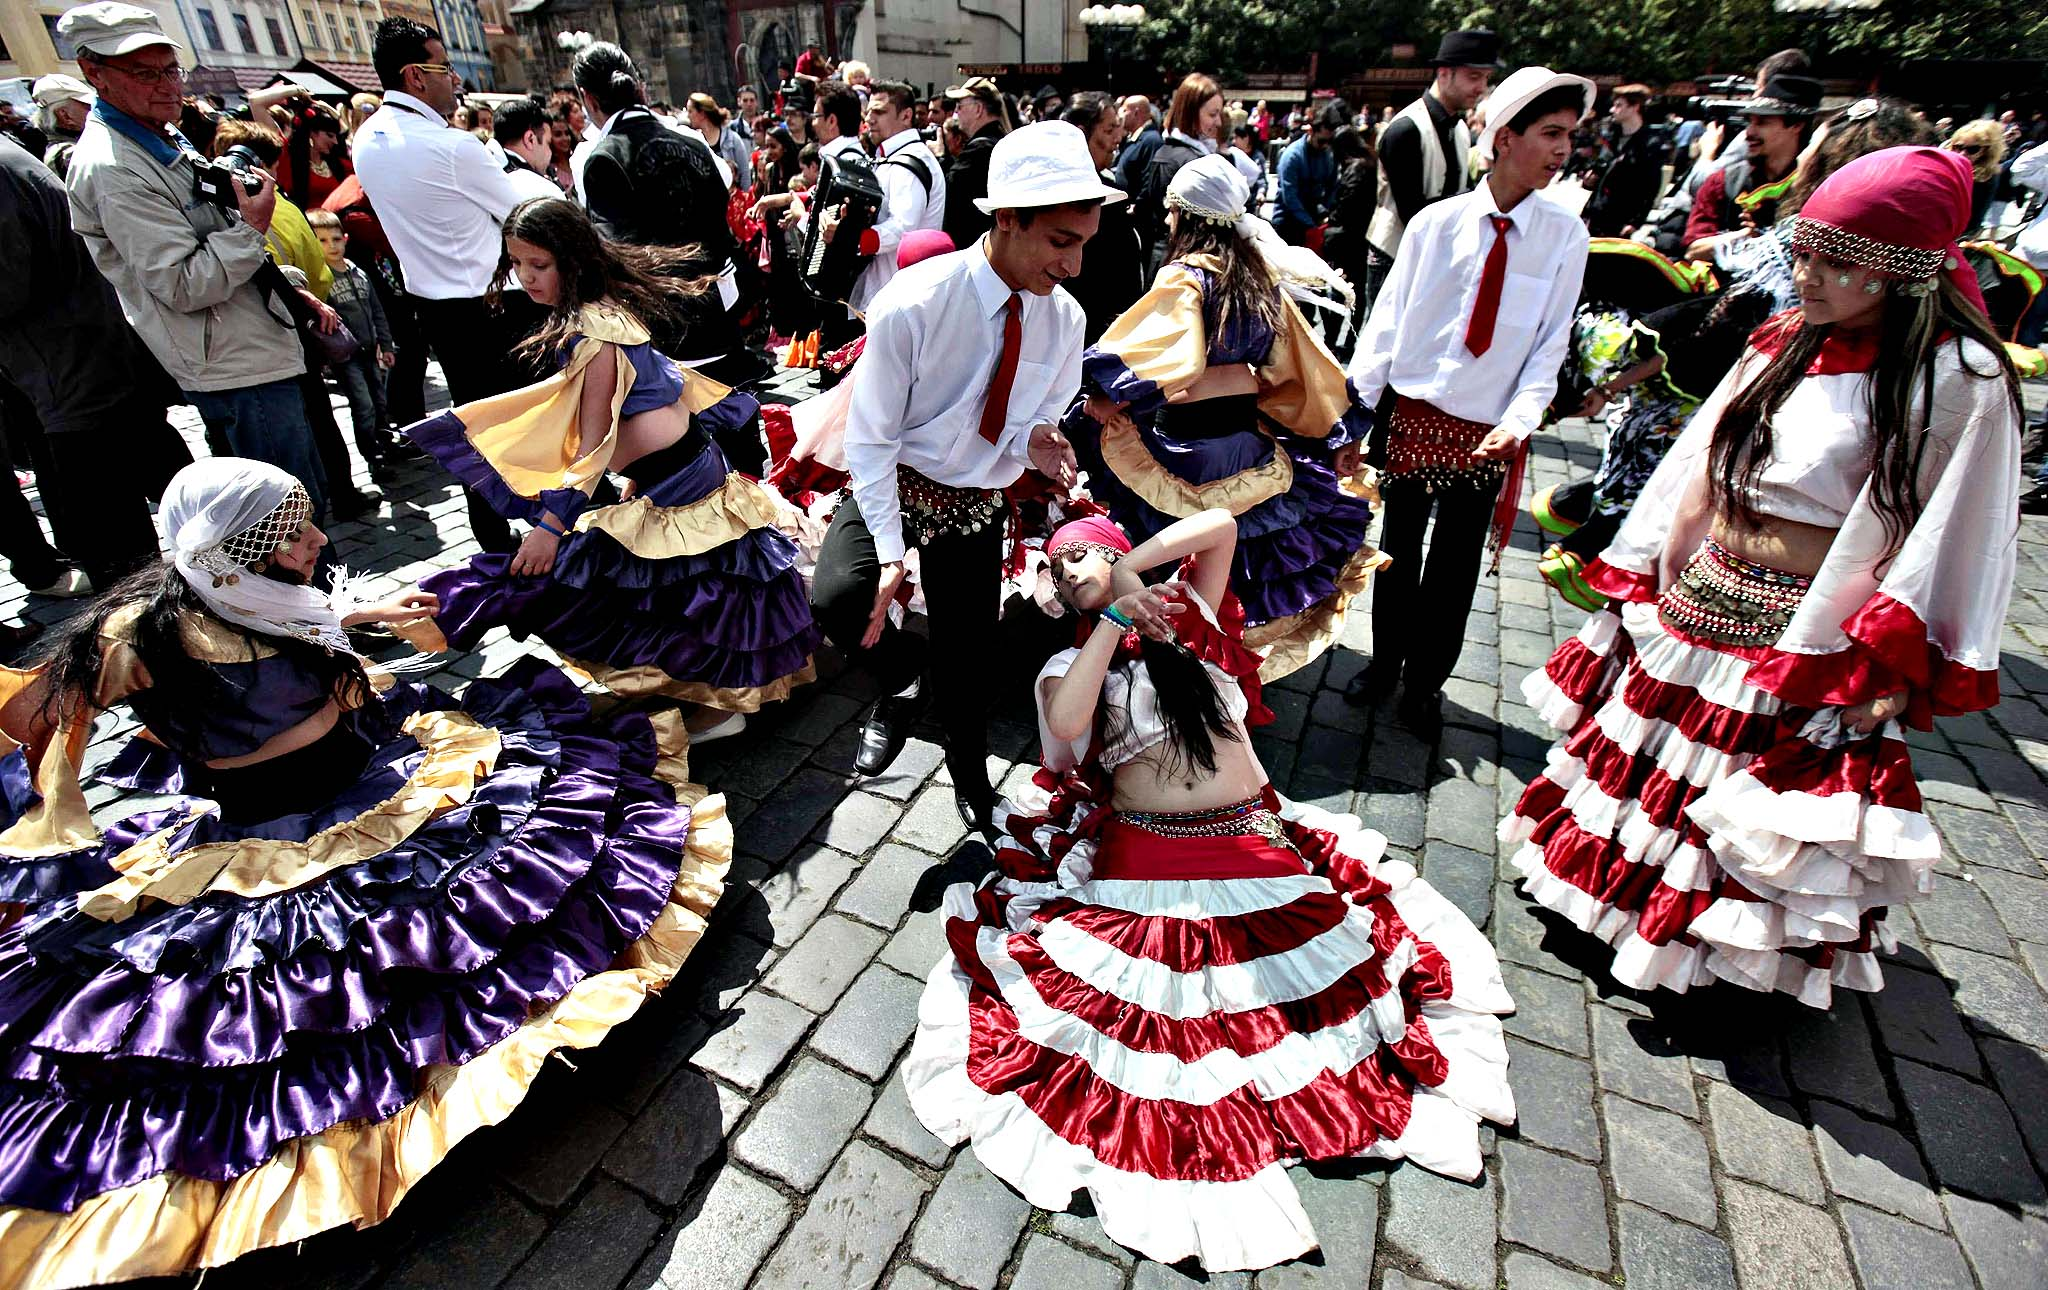 Participants of the Khamoro World Roma Festival dance through the historical centre of Prague May 30, 2014. The festival aims to showcase Roma culture and improve relations between society and members of the Roma community, according to the organisers.